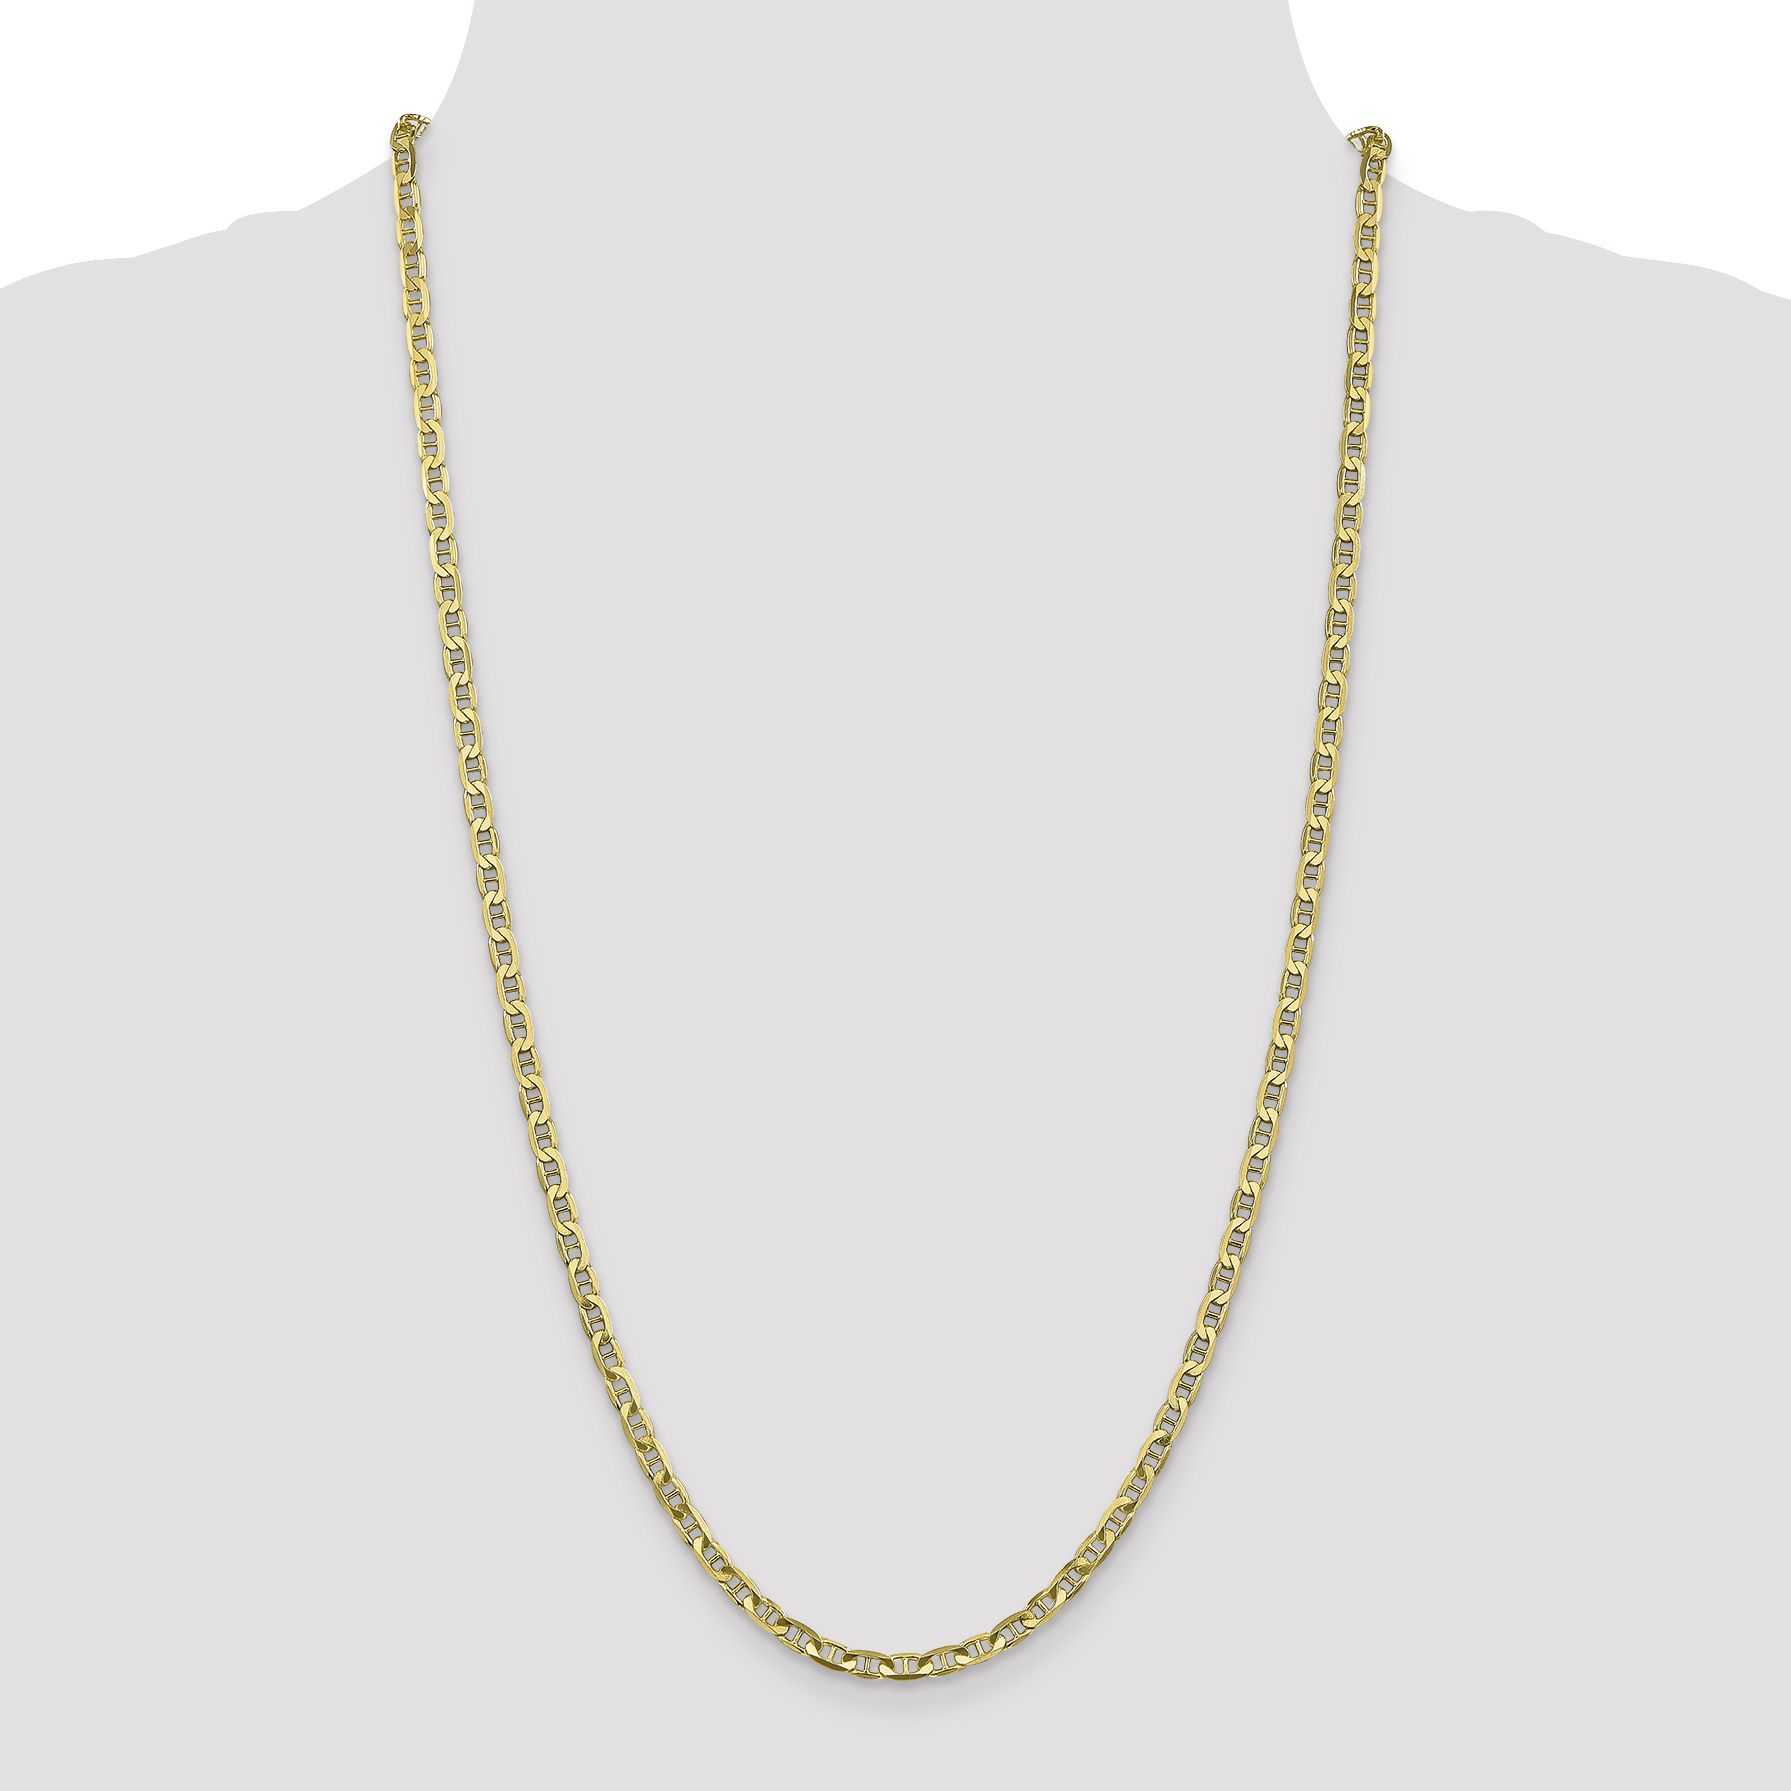 10K Yellow Gold 3.75mm Concave Anchor Chain 18 Inch - image 2 of 6